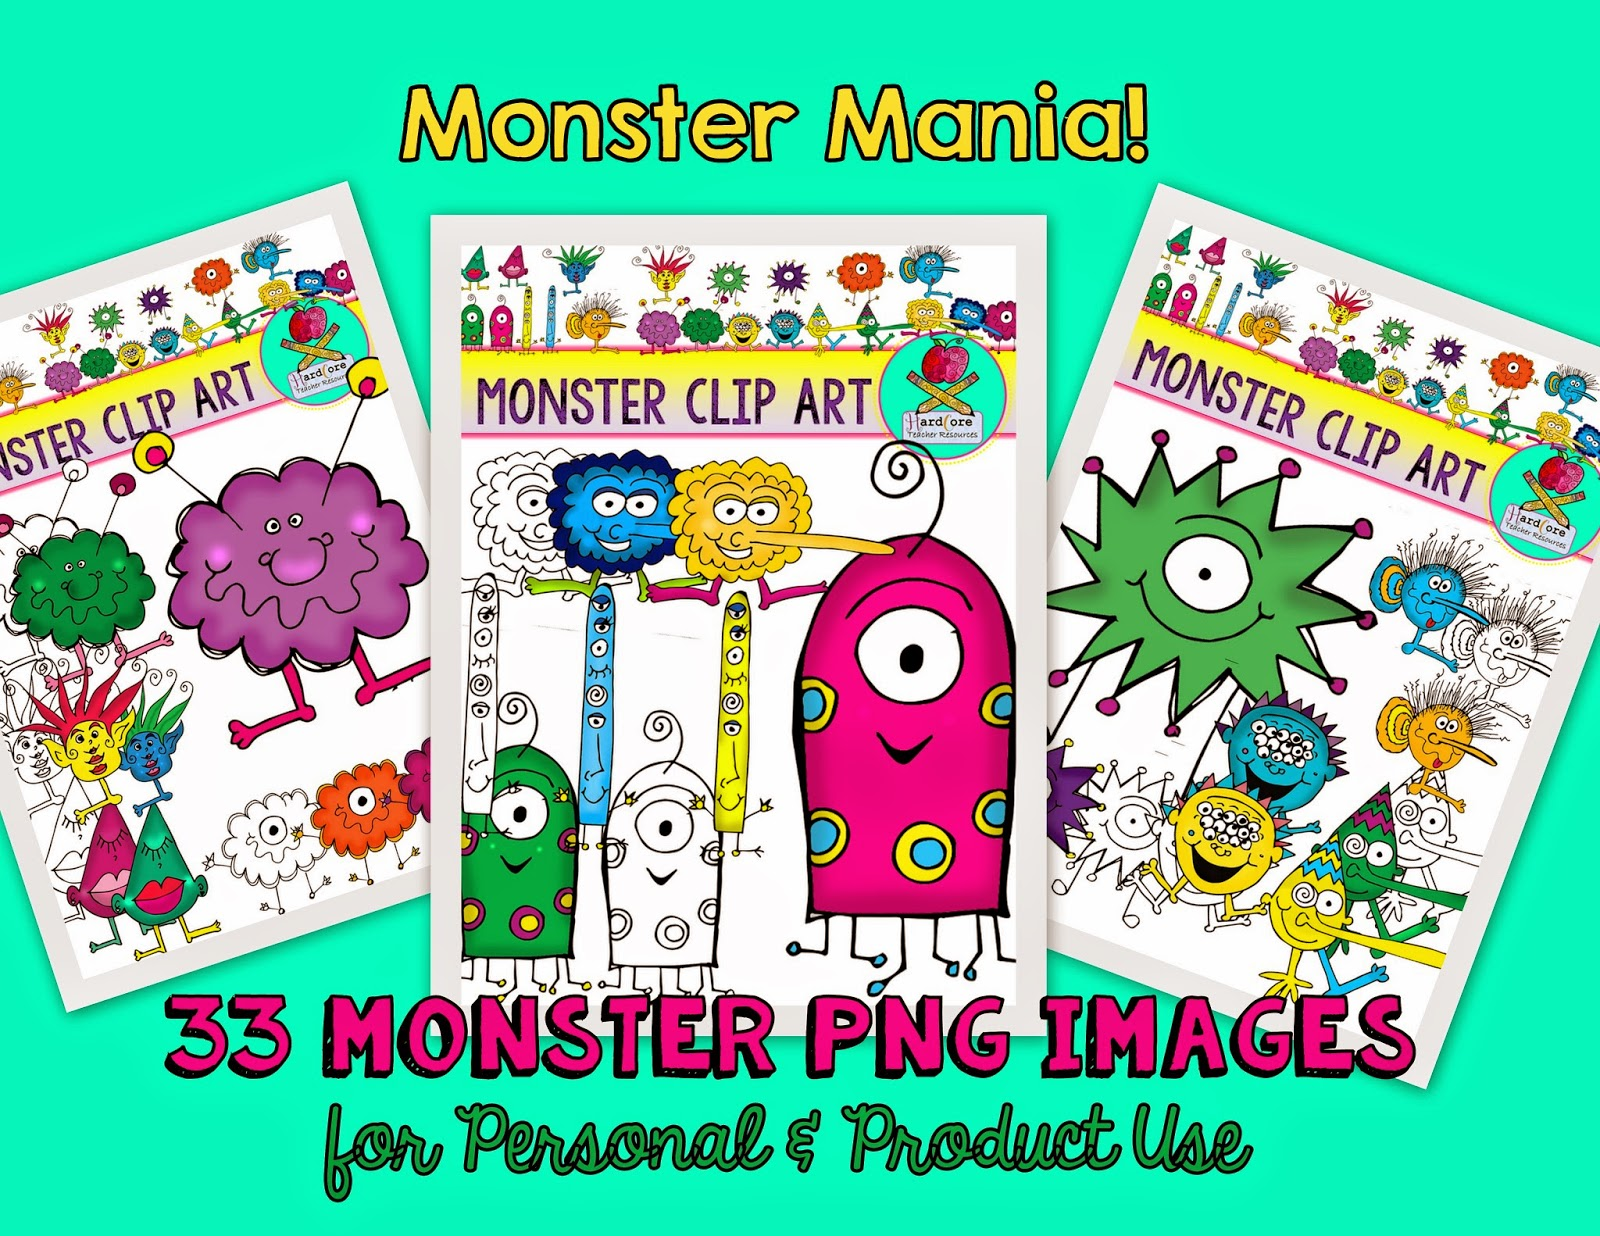 http://www.teacherspayteachers.com/Product/Monster-Clip-Art-33-PNG-Monster-Images-Commercial-Personal-Use-MONSTERS-1365489